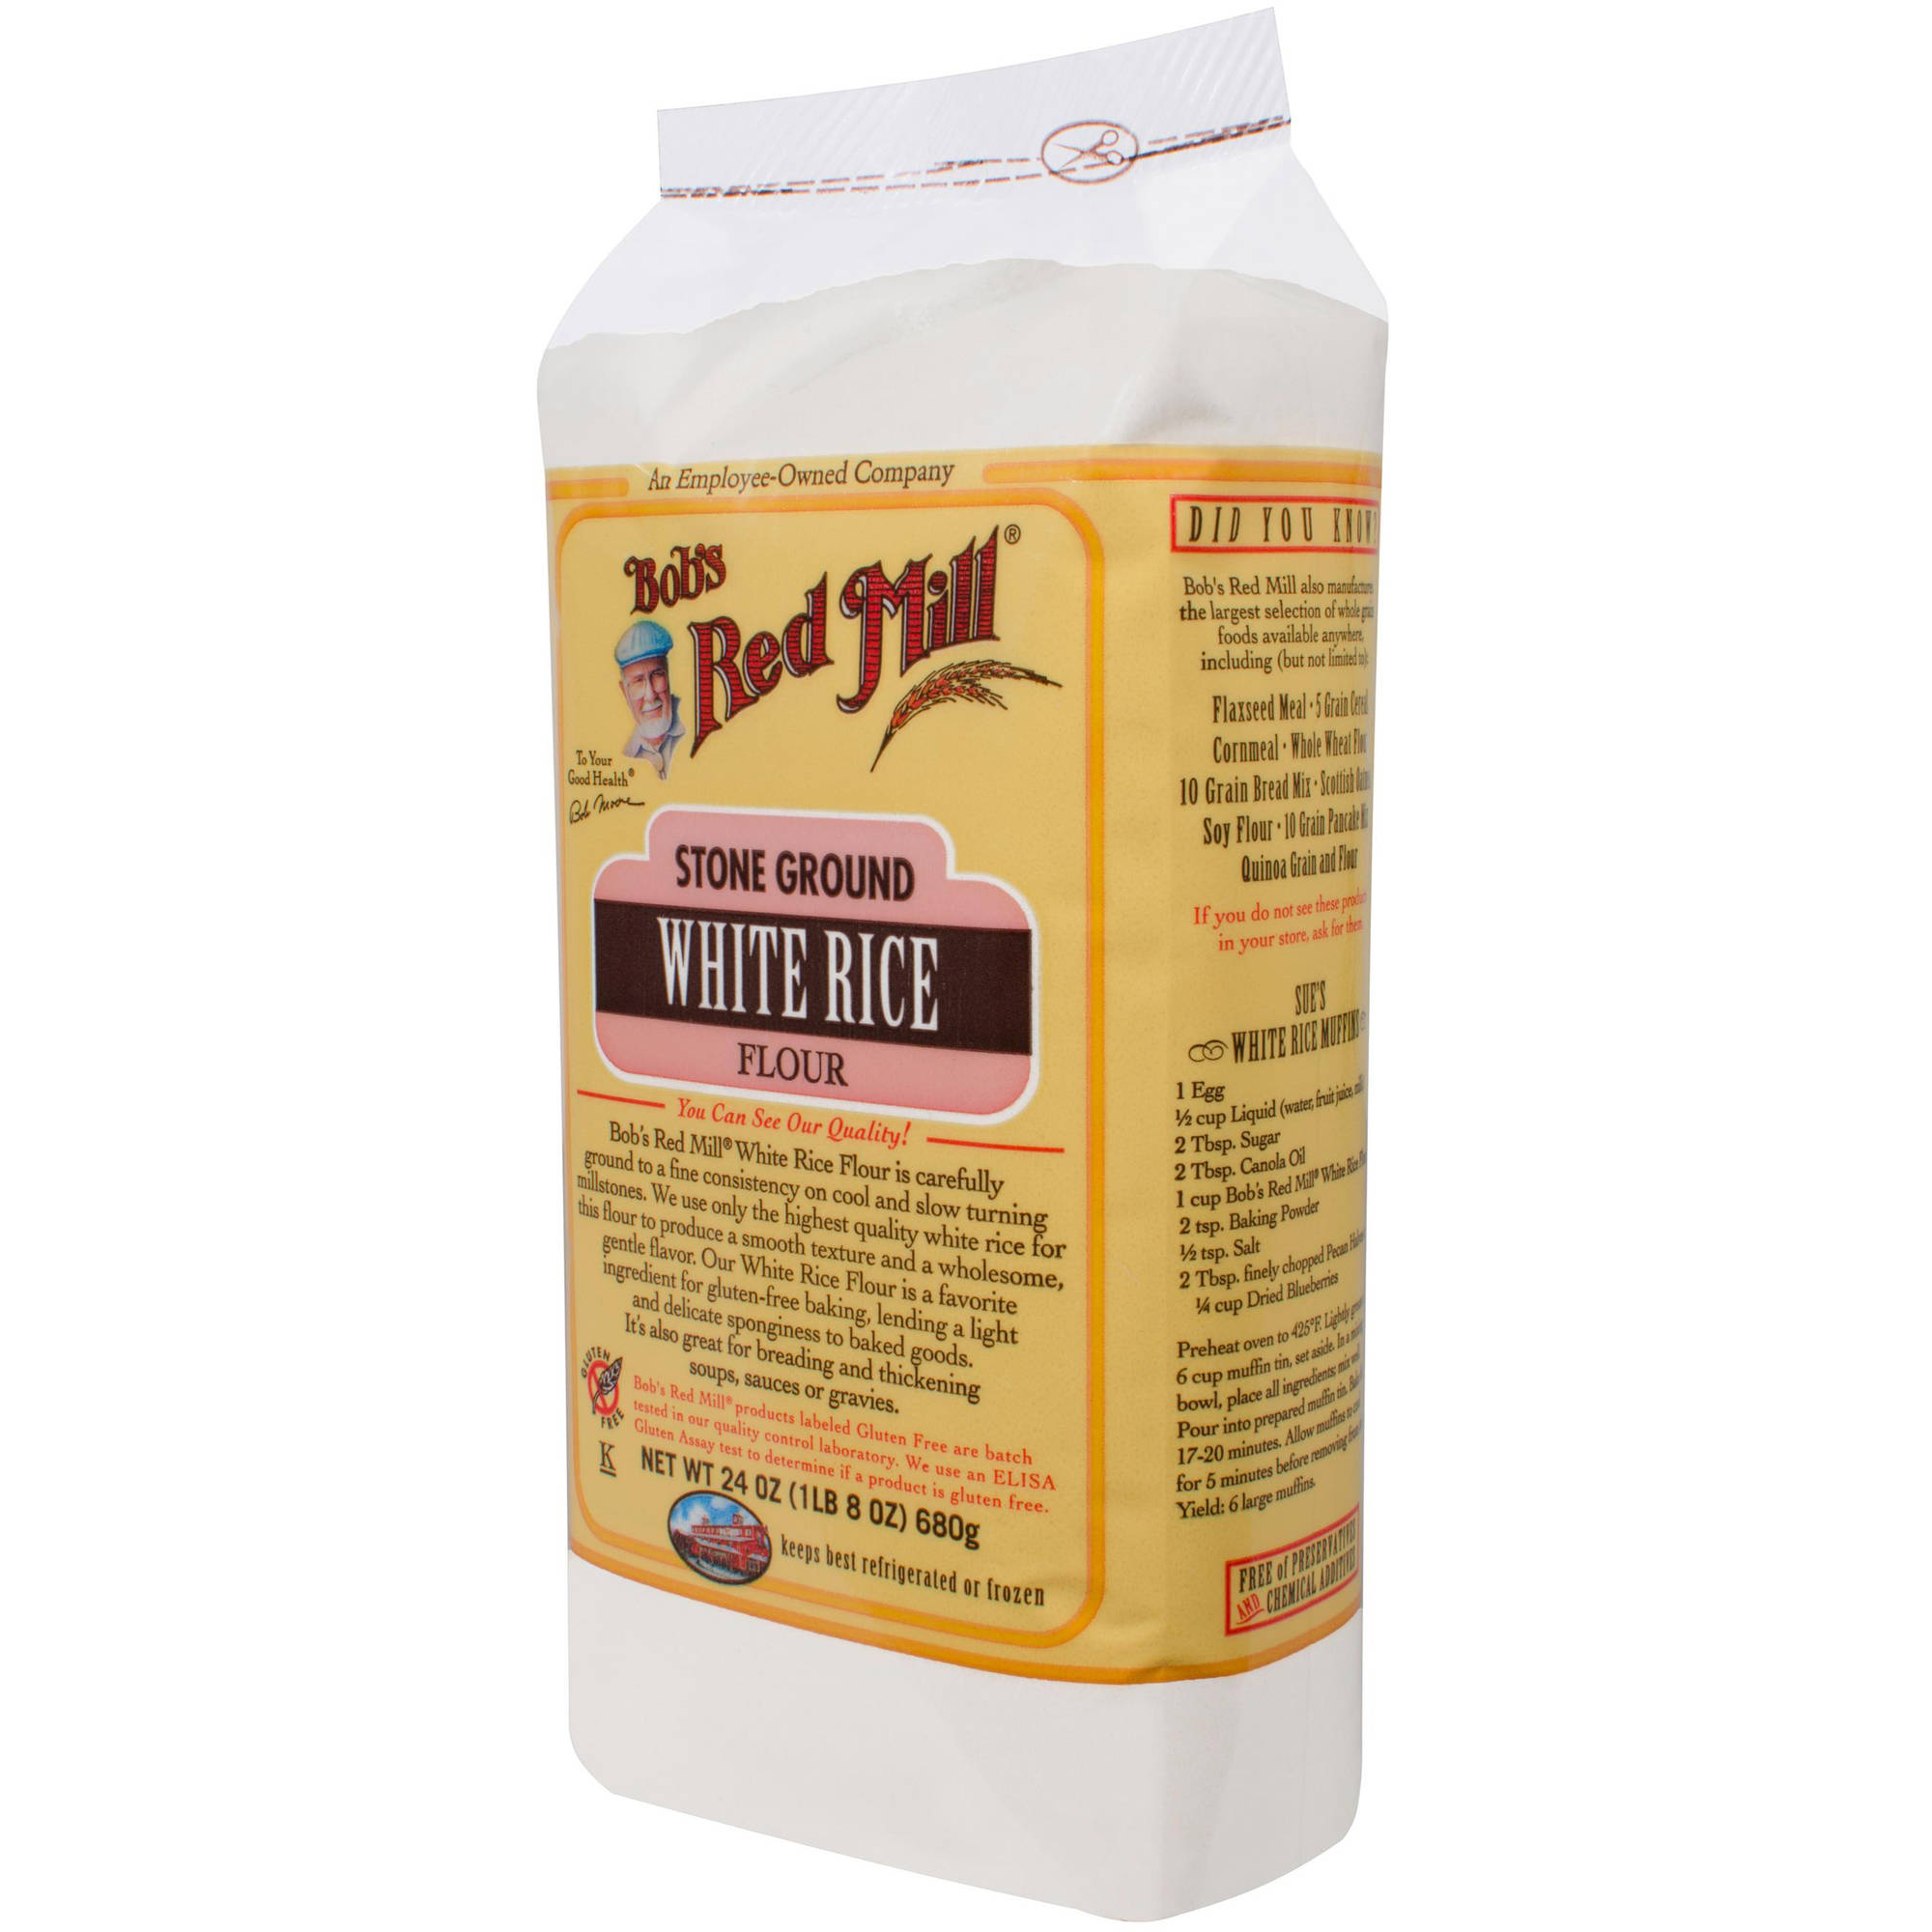 Bob's Red Mill Flour White Rice, 24 oz (Pack of 4)